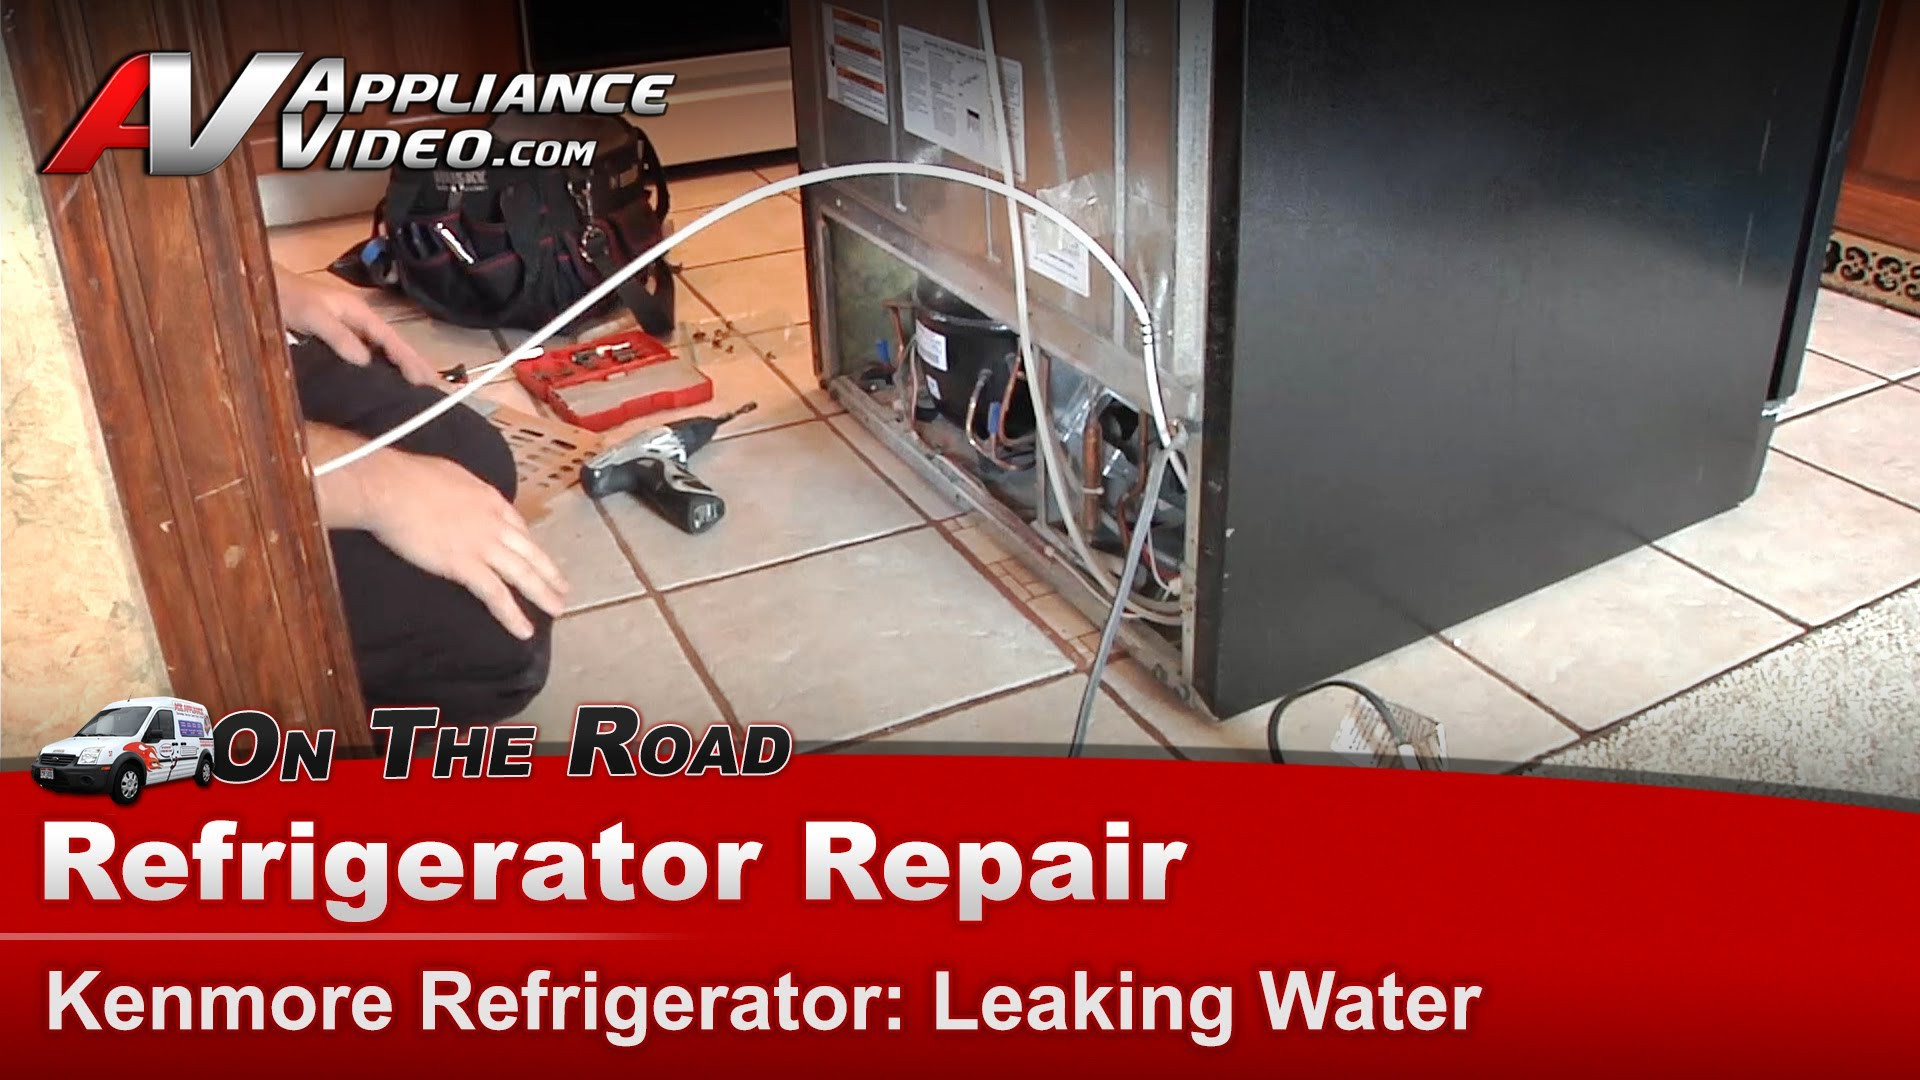 samsung refrigerator wiring diagram mitsubishi canter headlight kenmore 106535900 diagnostic and repair – leaking water drain tube | appliance video